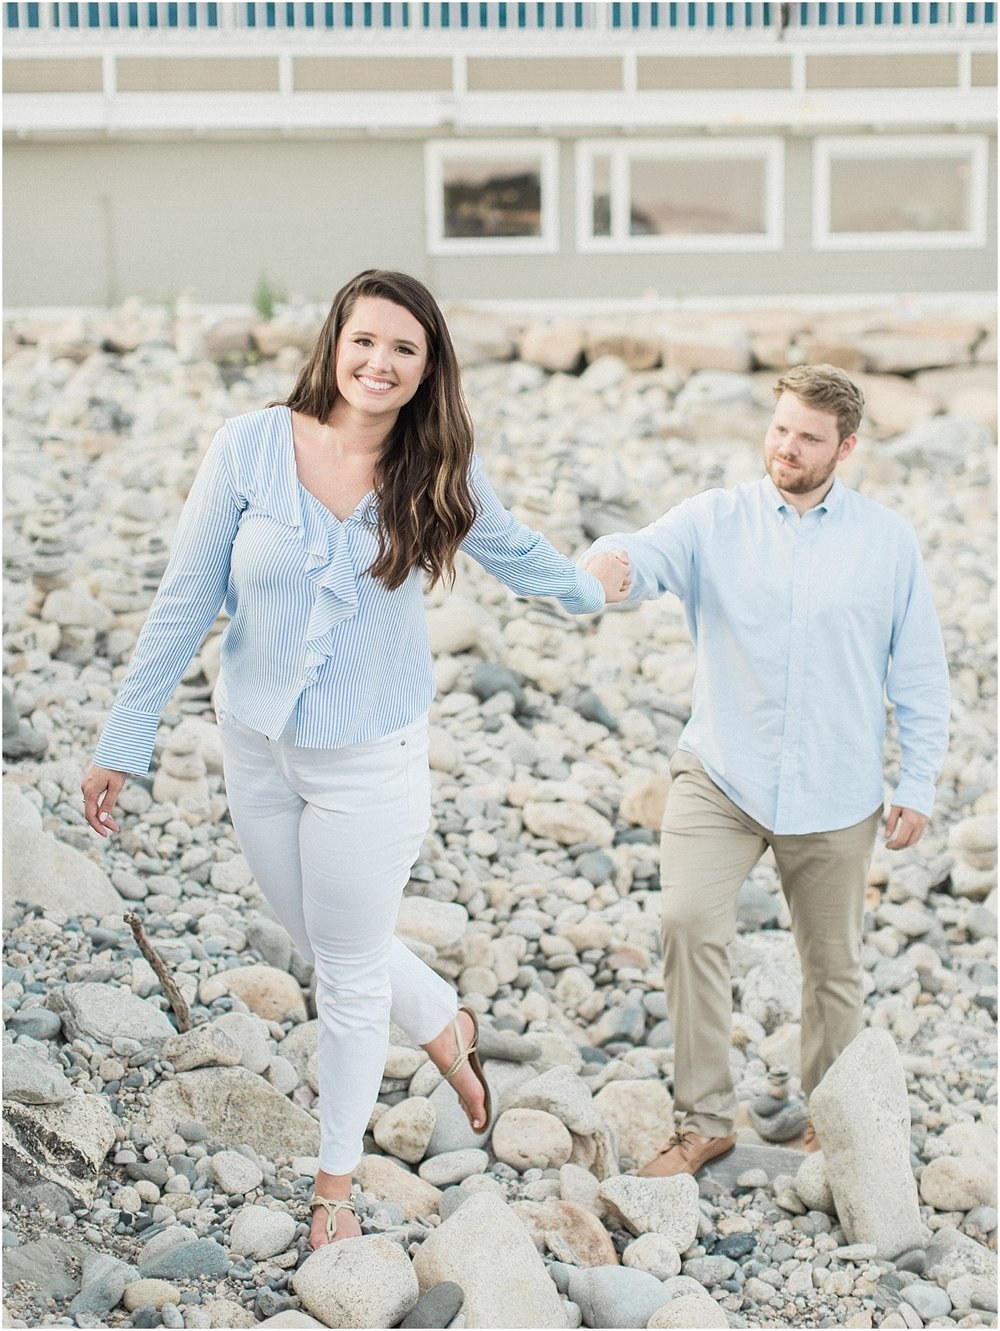 heather_chris_narragansett_beer_cliff_walk_beach_rhode_island_ri_cape_cod_boston_wedding_photographer_meredith_jane_photography_photo_0740.jpg